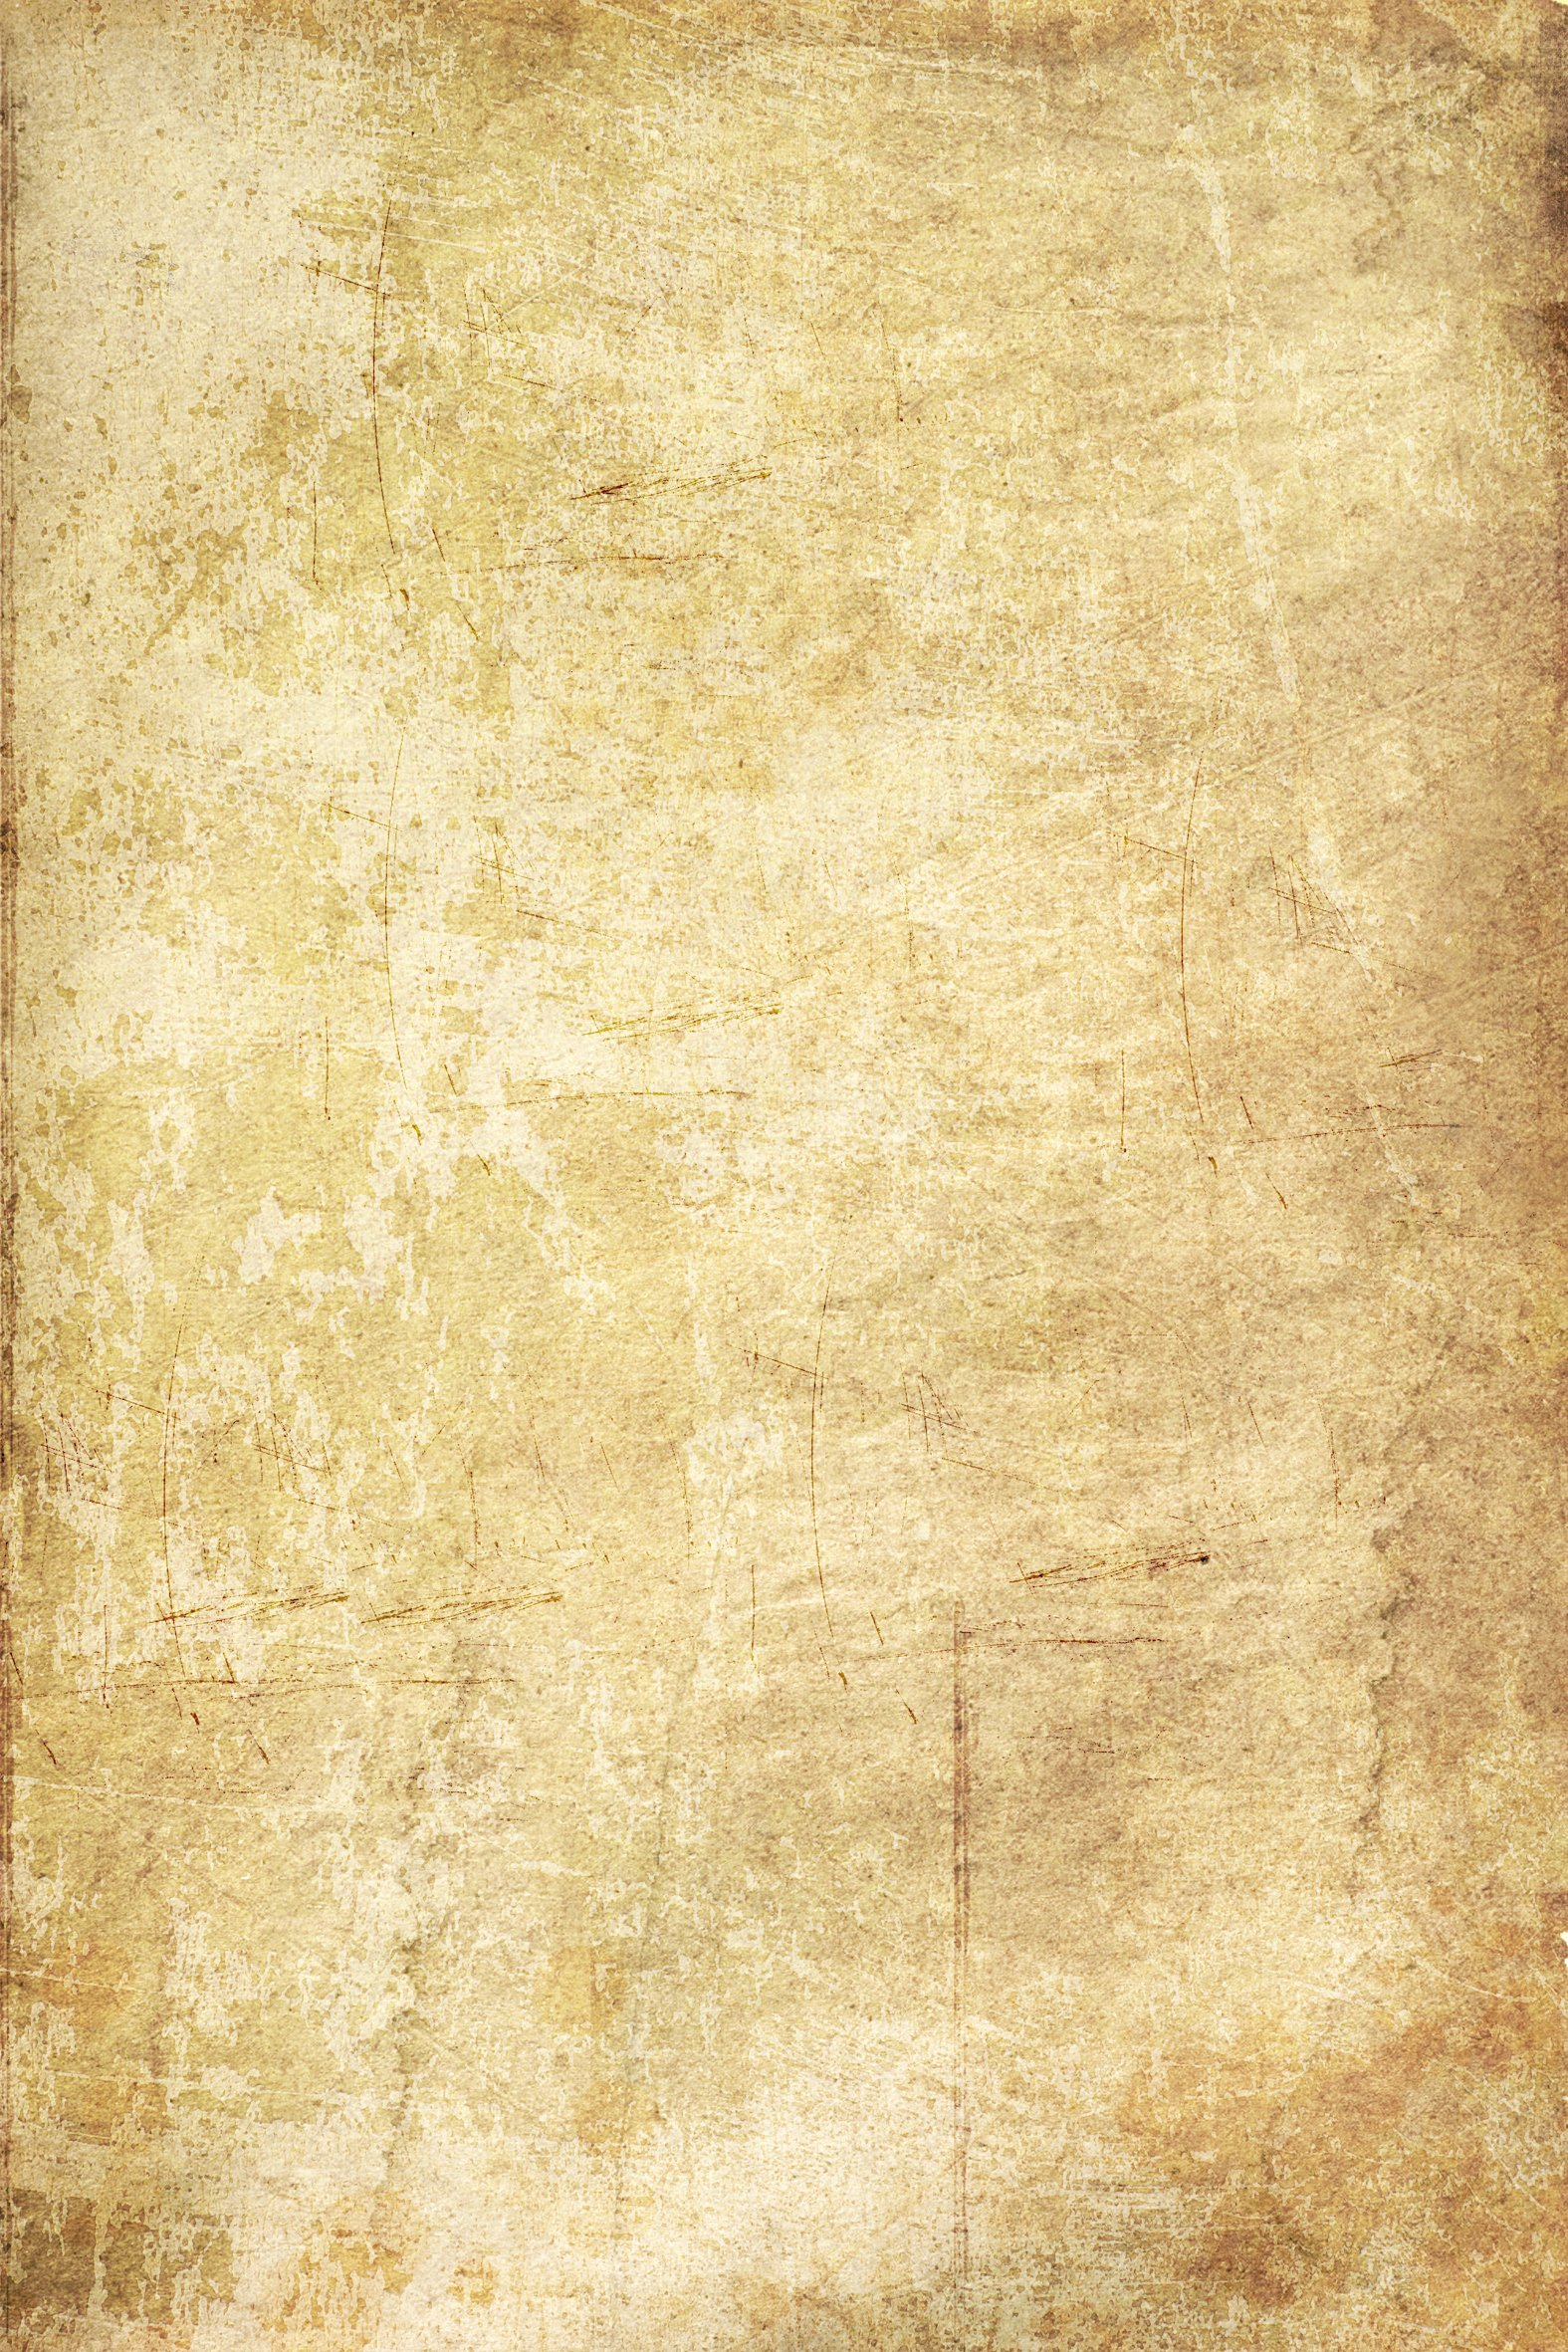 Old Paper Texture Free New Old Paper Texture Background Free Image